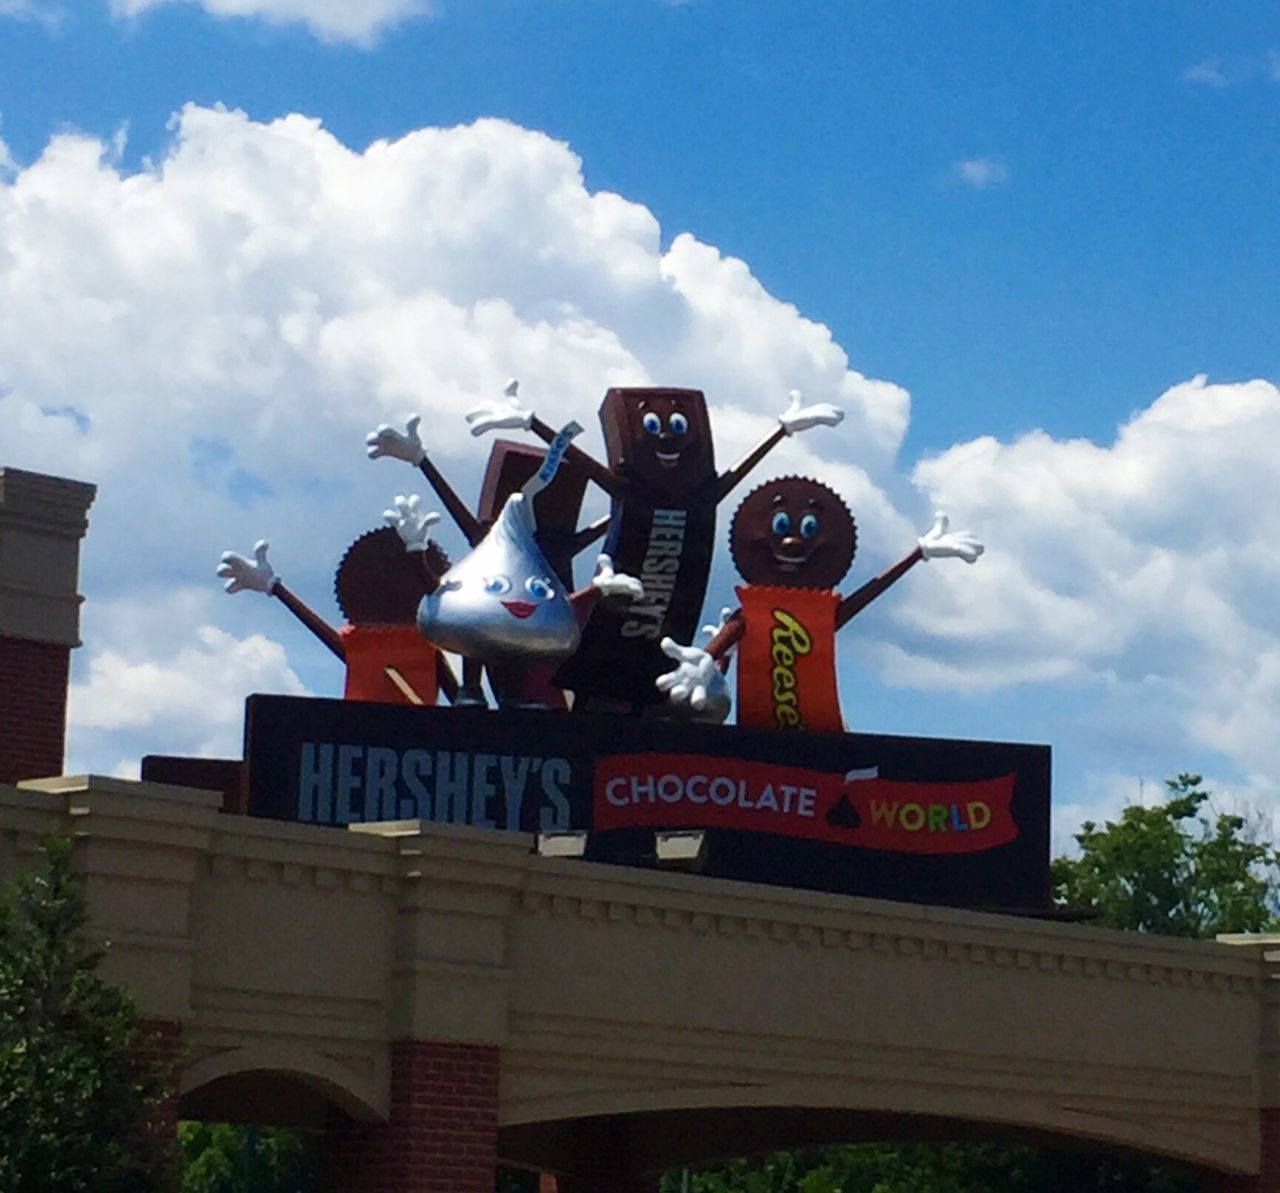 Hershey's Chocolate World Chocolate Characters Candy Photography Look Up 43 Golden Moments Capture The Moment Eyem Collection Eyeem Photography EyeEm EyeEm Gallery Eyeem Market Eyeem Community Hershey Pennsylvania Hershey, Pa Attractions Hershey Characters Fine Art Photography On The Way Hidden Gems  Showcase July EyeEm Team Home Is Where The Art Is Two Is Better Than One